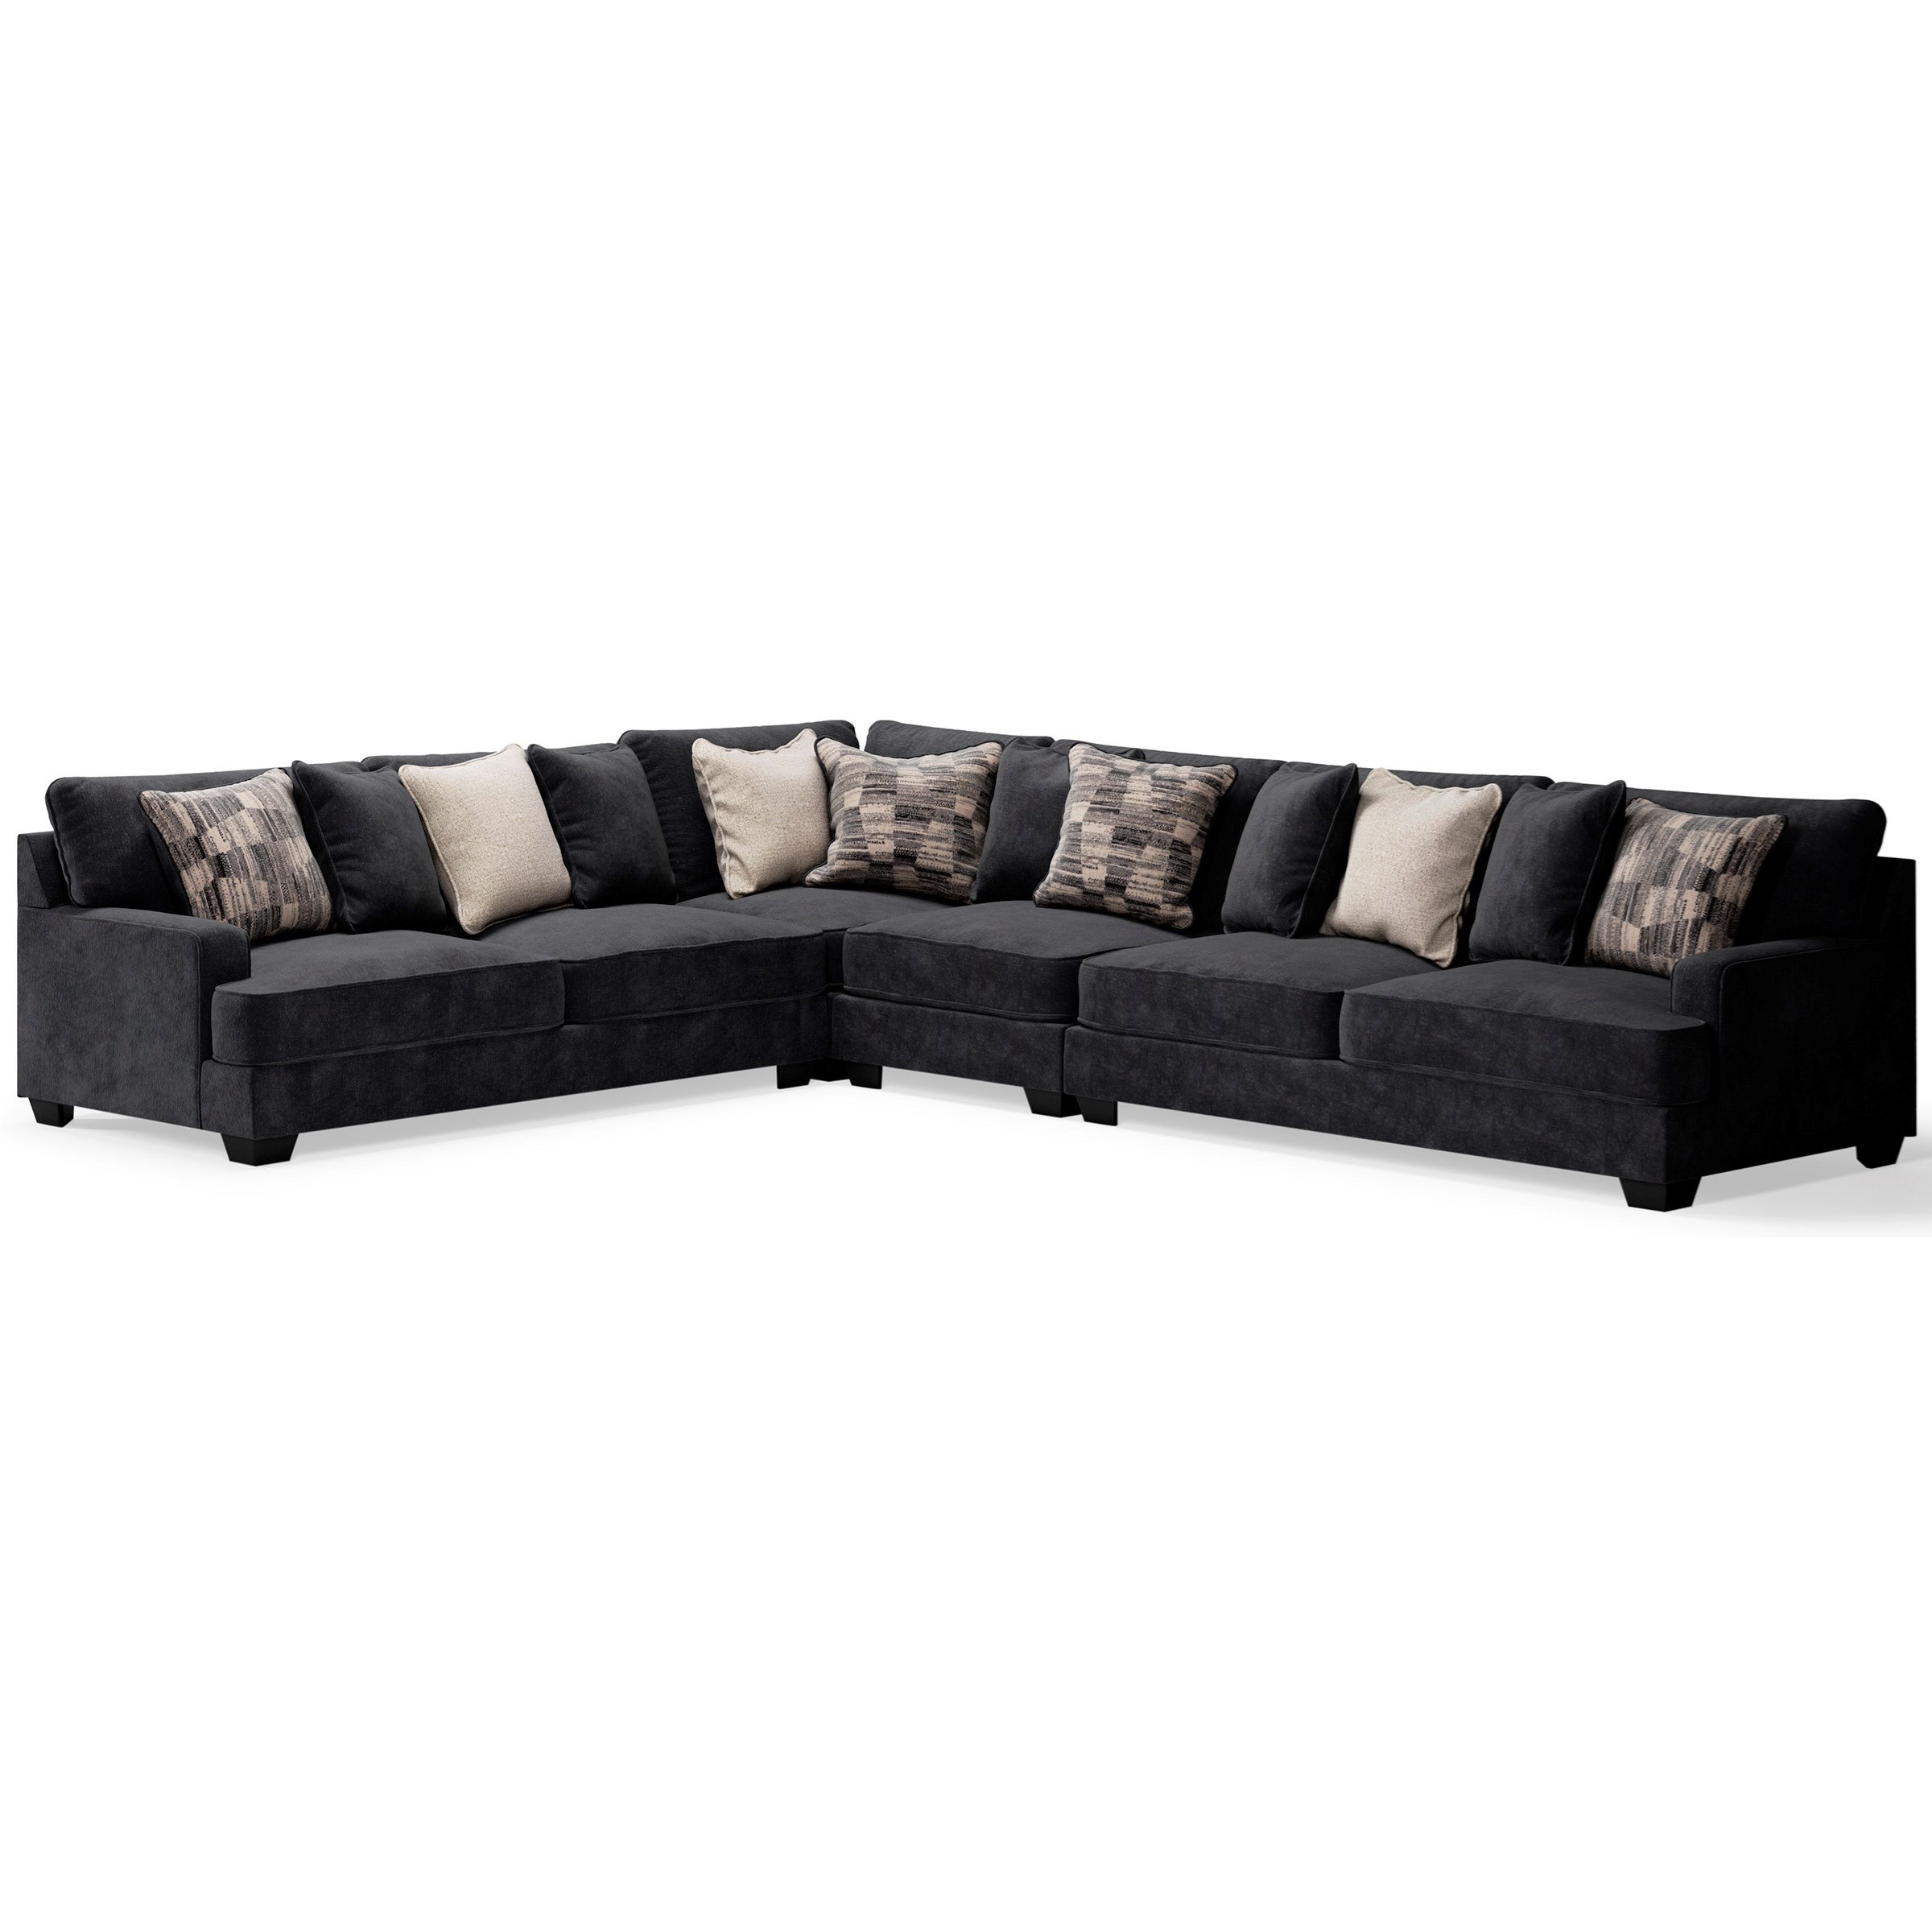 Lavernett 4-Piece Sectional by Signature at Walker's Furniture